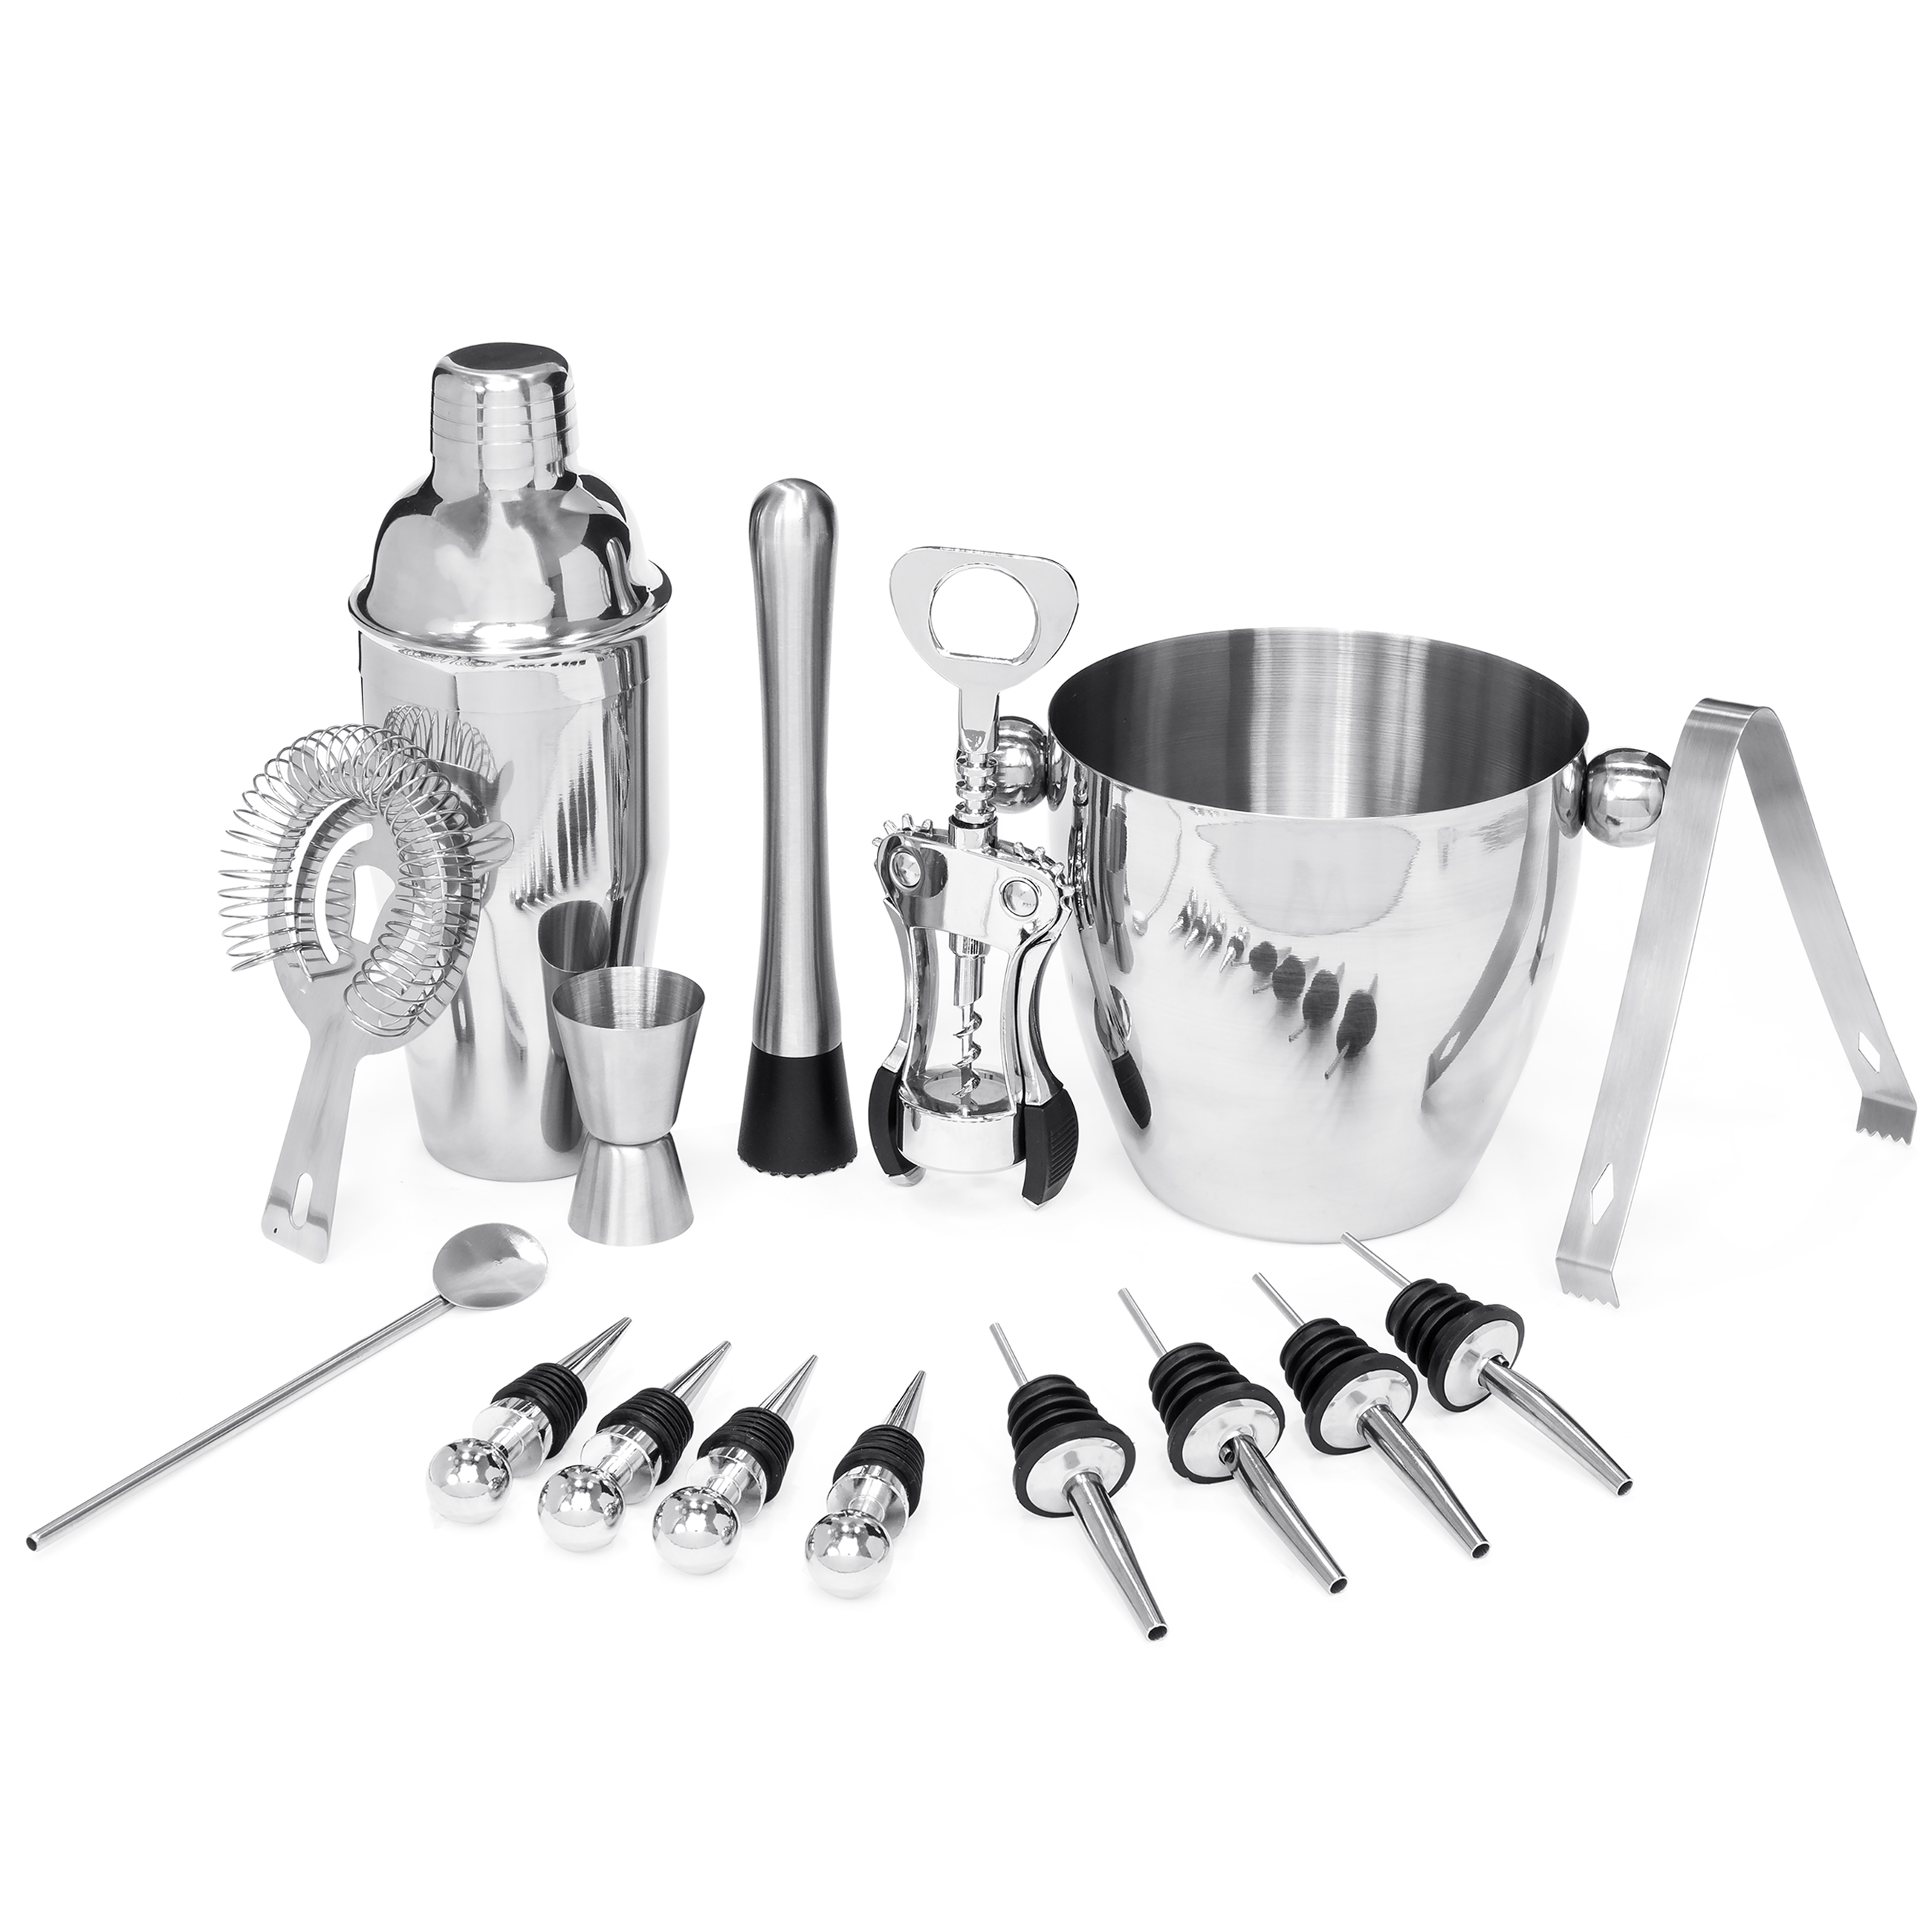 Best Choice Products 16-Piece Stainless Steel Bartender Mixology Set w/ Ice Bucket, Cocktail Shaker, Strainer, Corkscrew